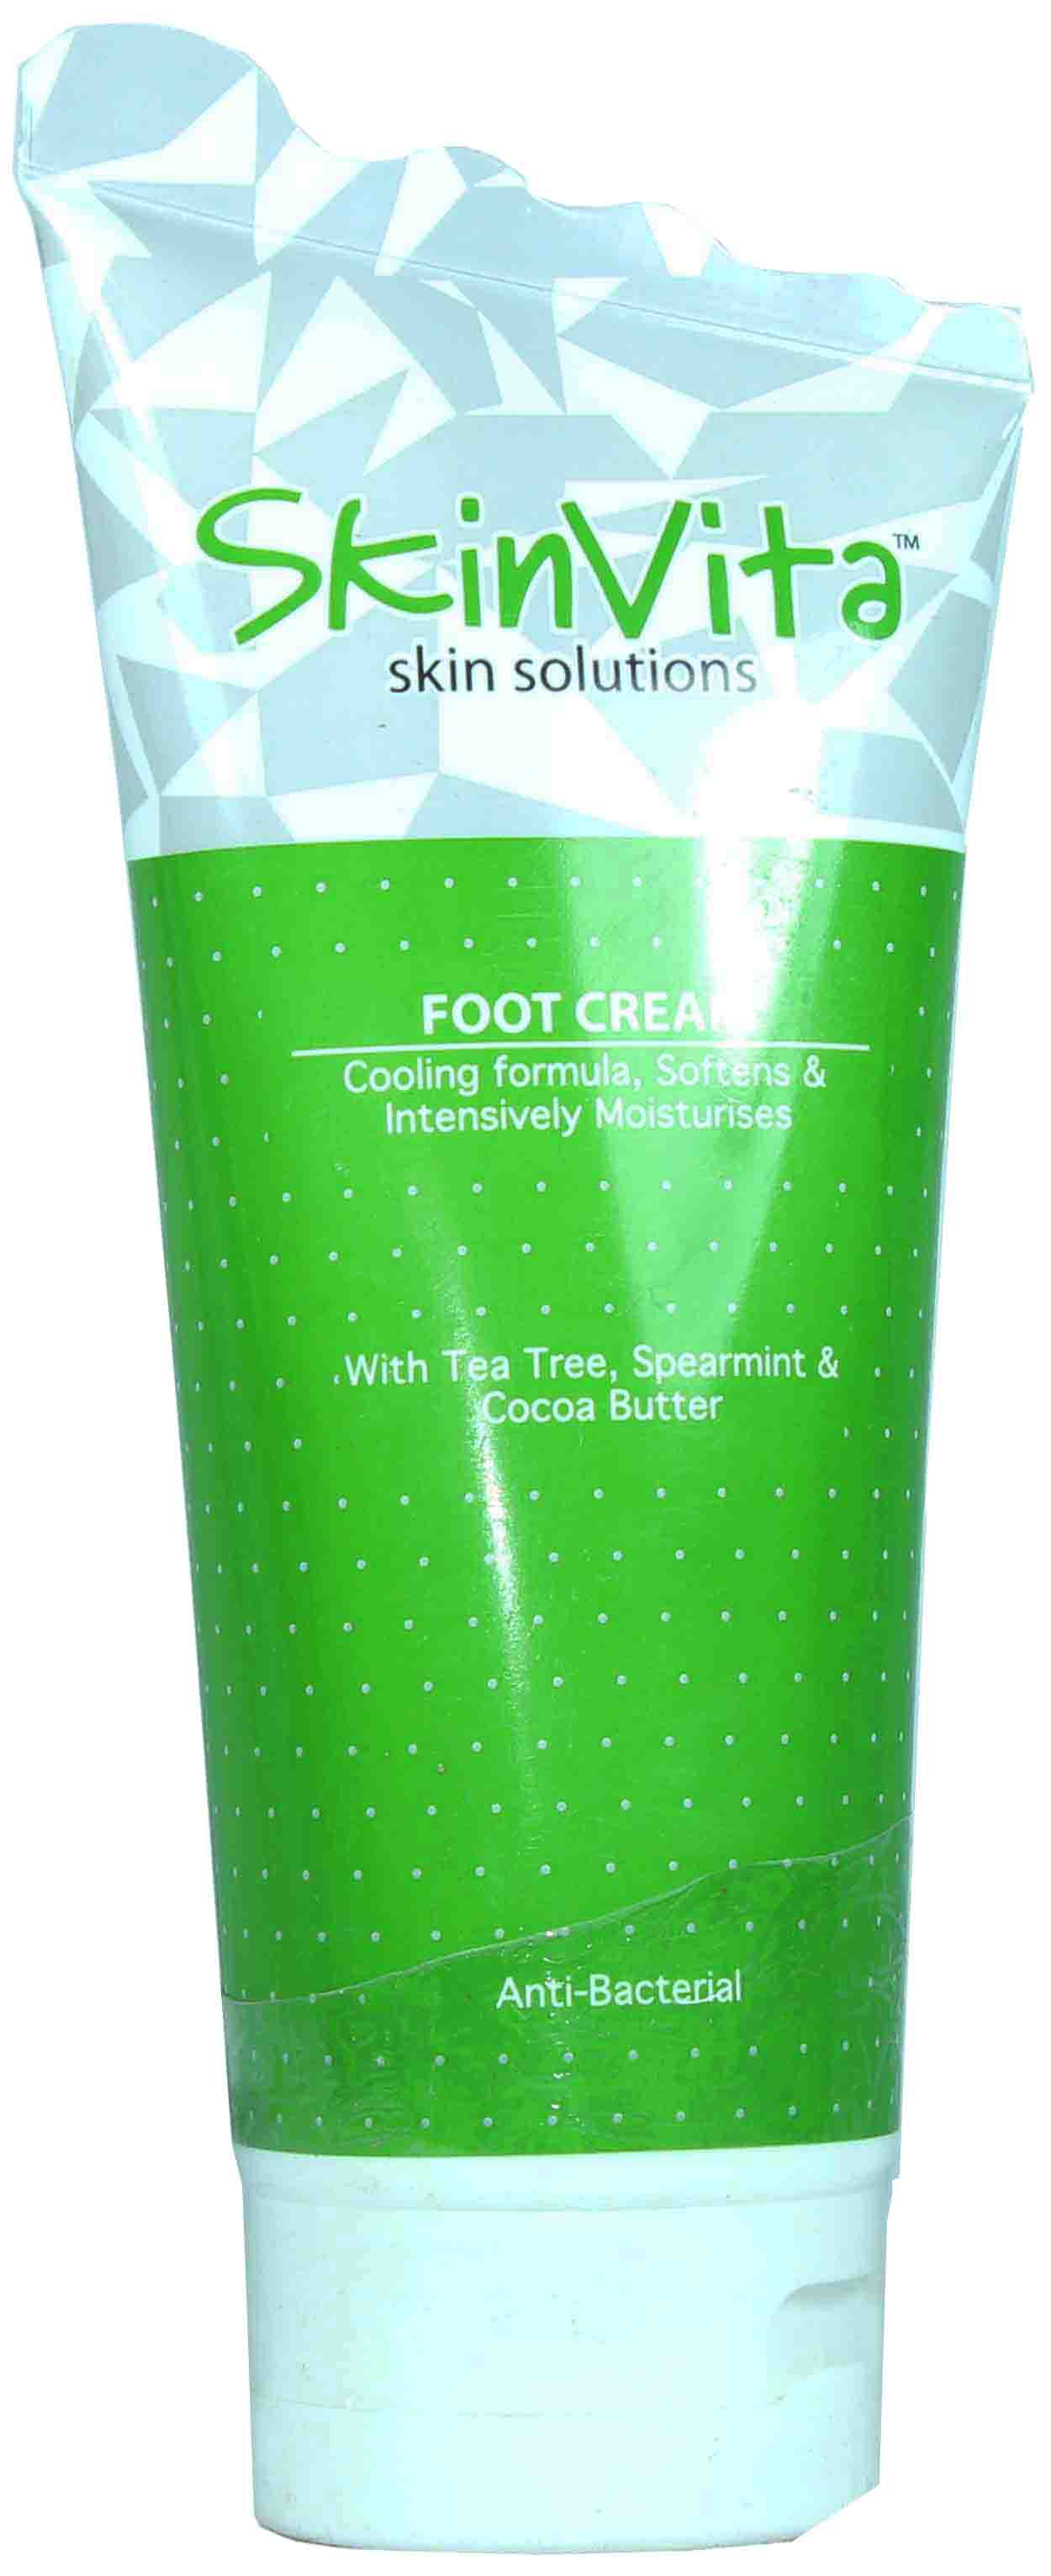 Skin Vita Foot Cream 150ml